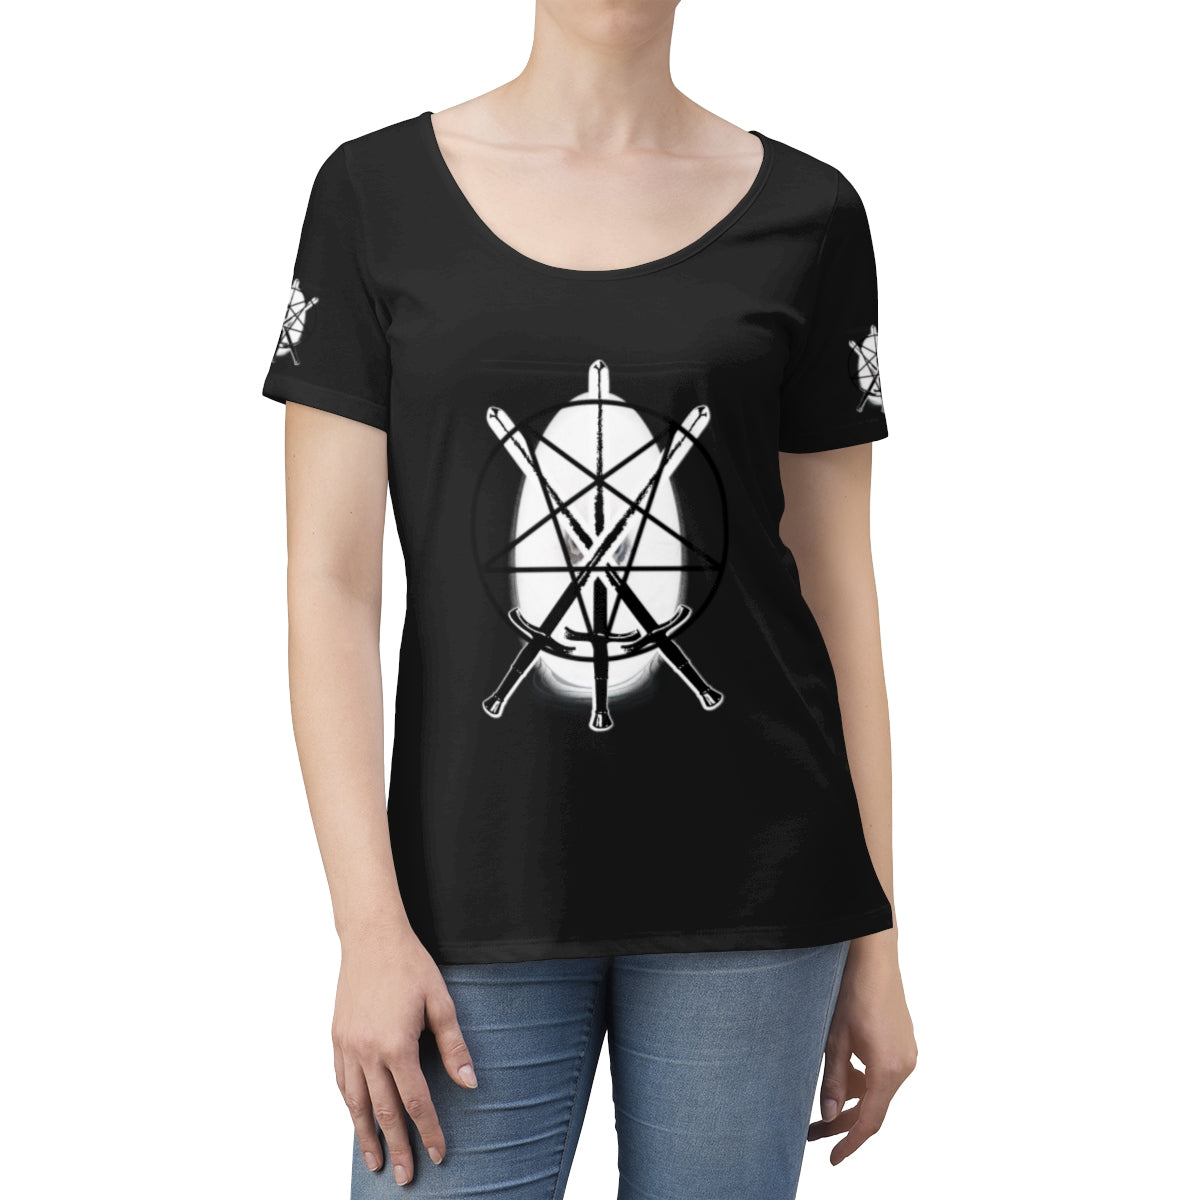 Women's Sword Of Eggs T-shirt